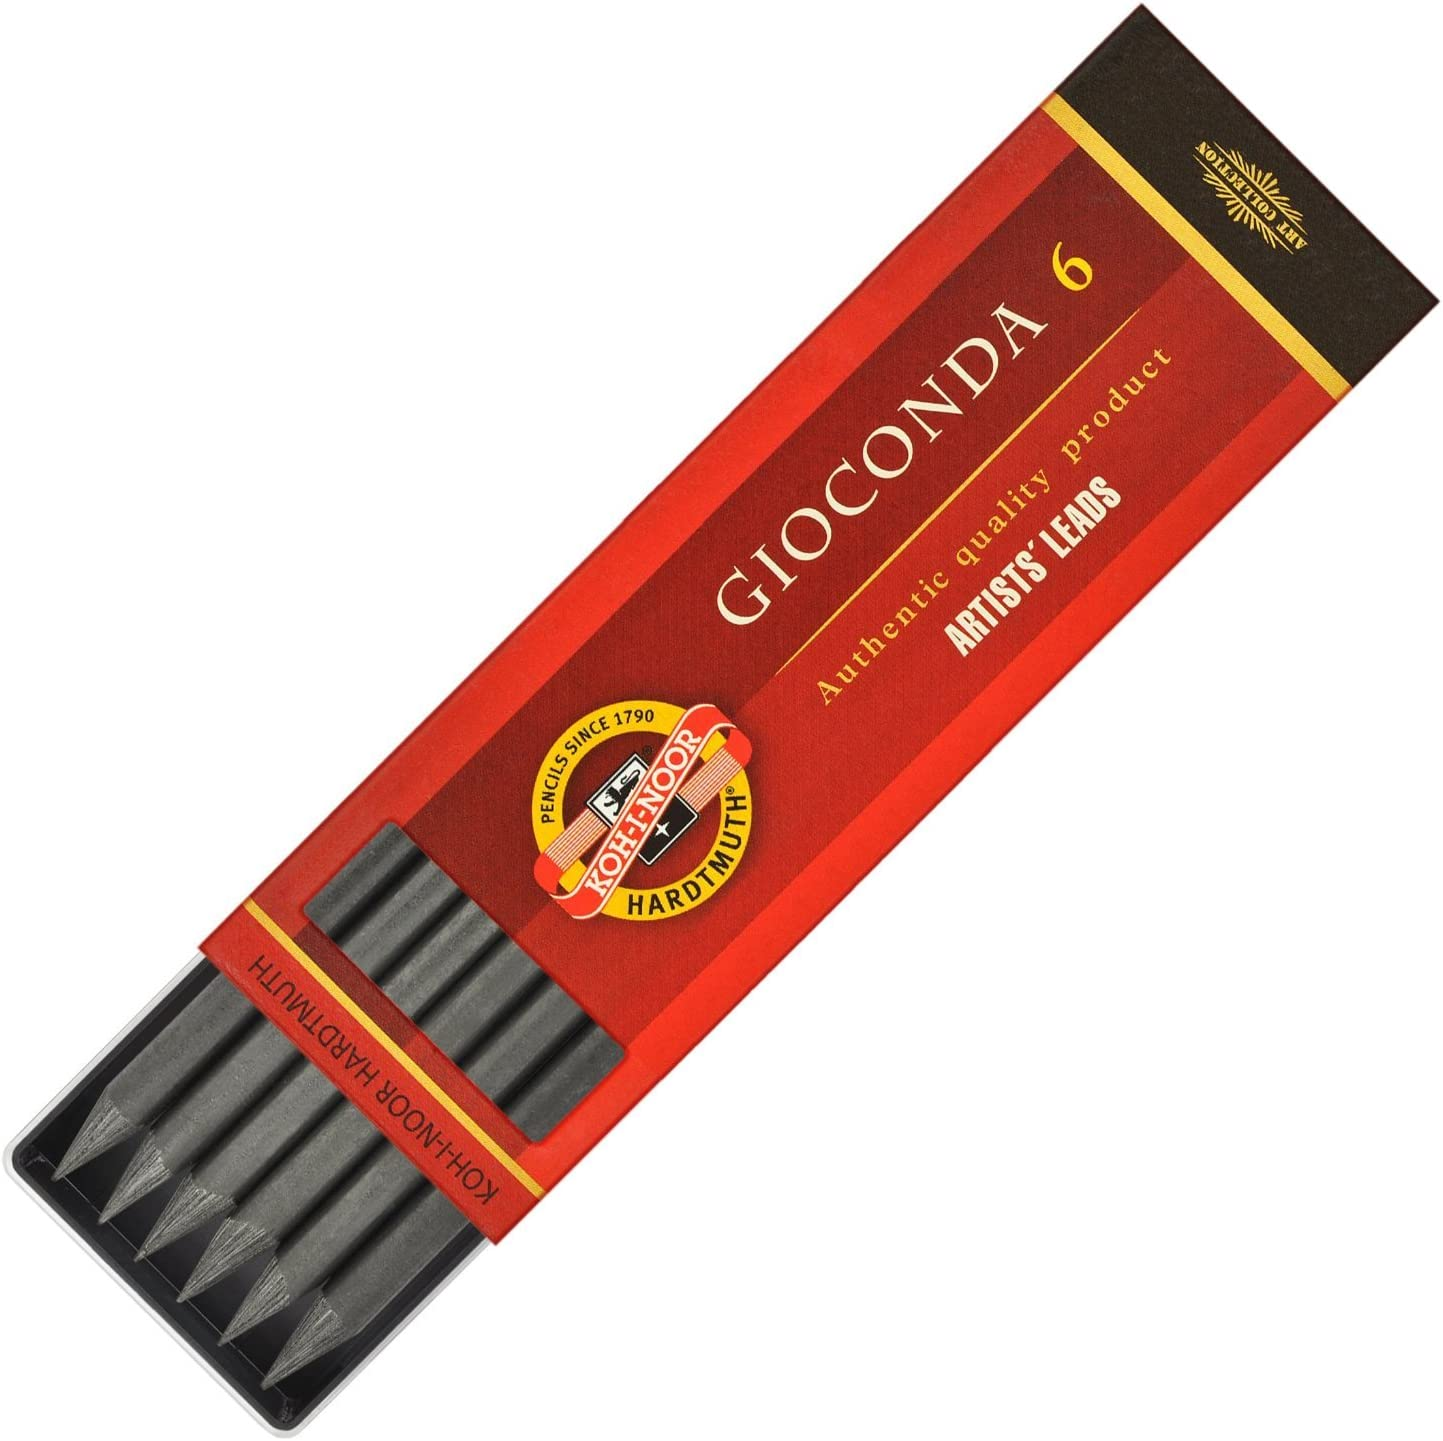 Koh-I-Noor Gioconda 5.6 mm, Set of 6 Leads for Artists' Drawing. 4865 6B